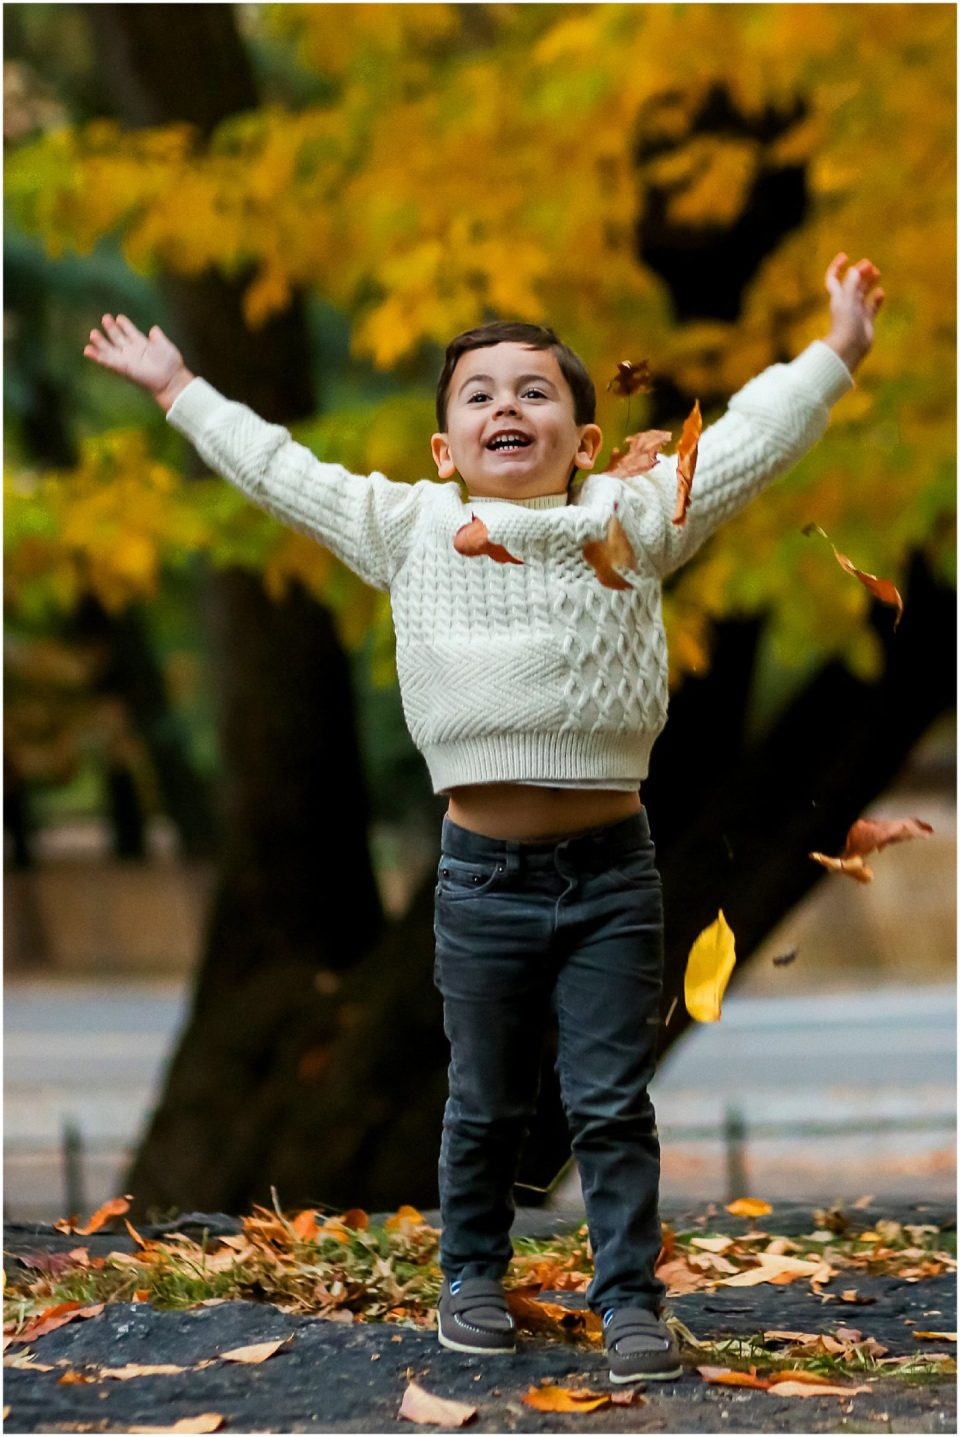 Helena Woods photographing kid jumping in autumn foilage